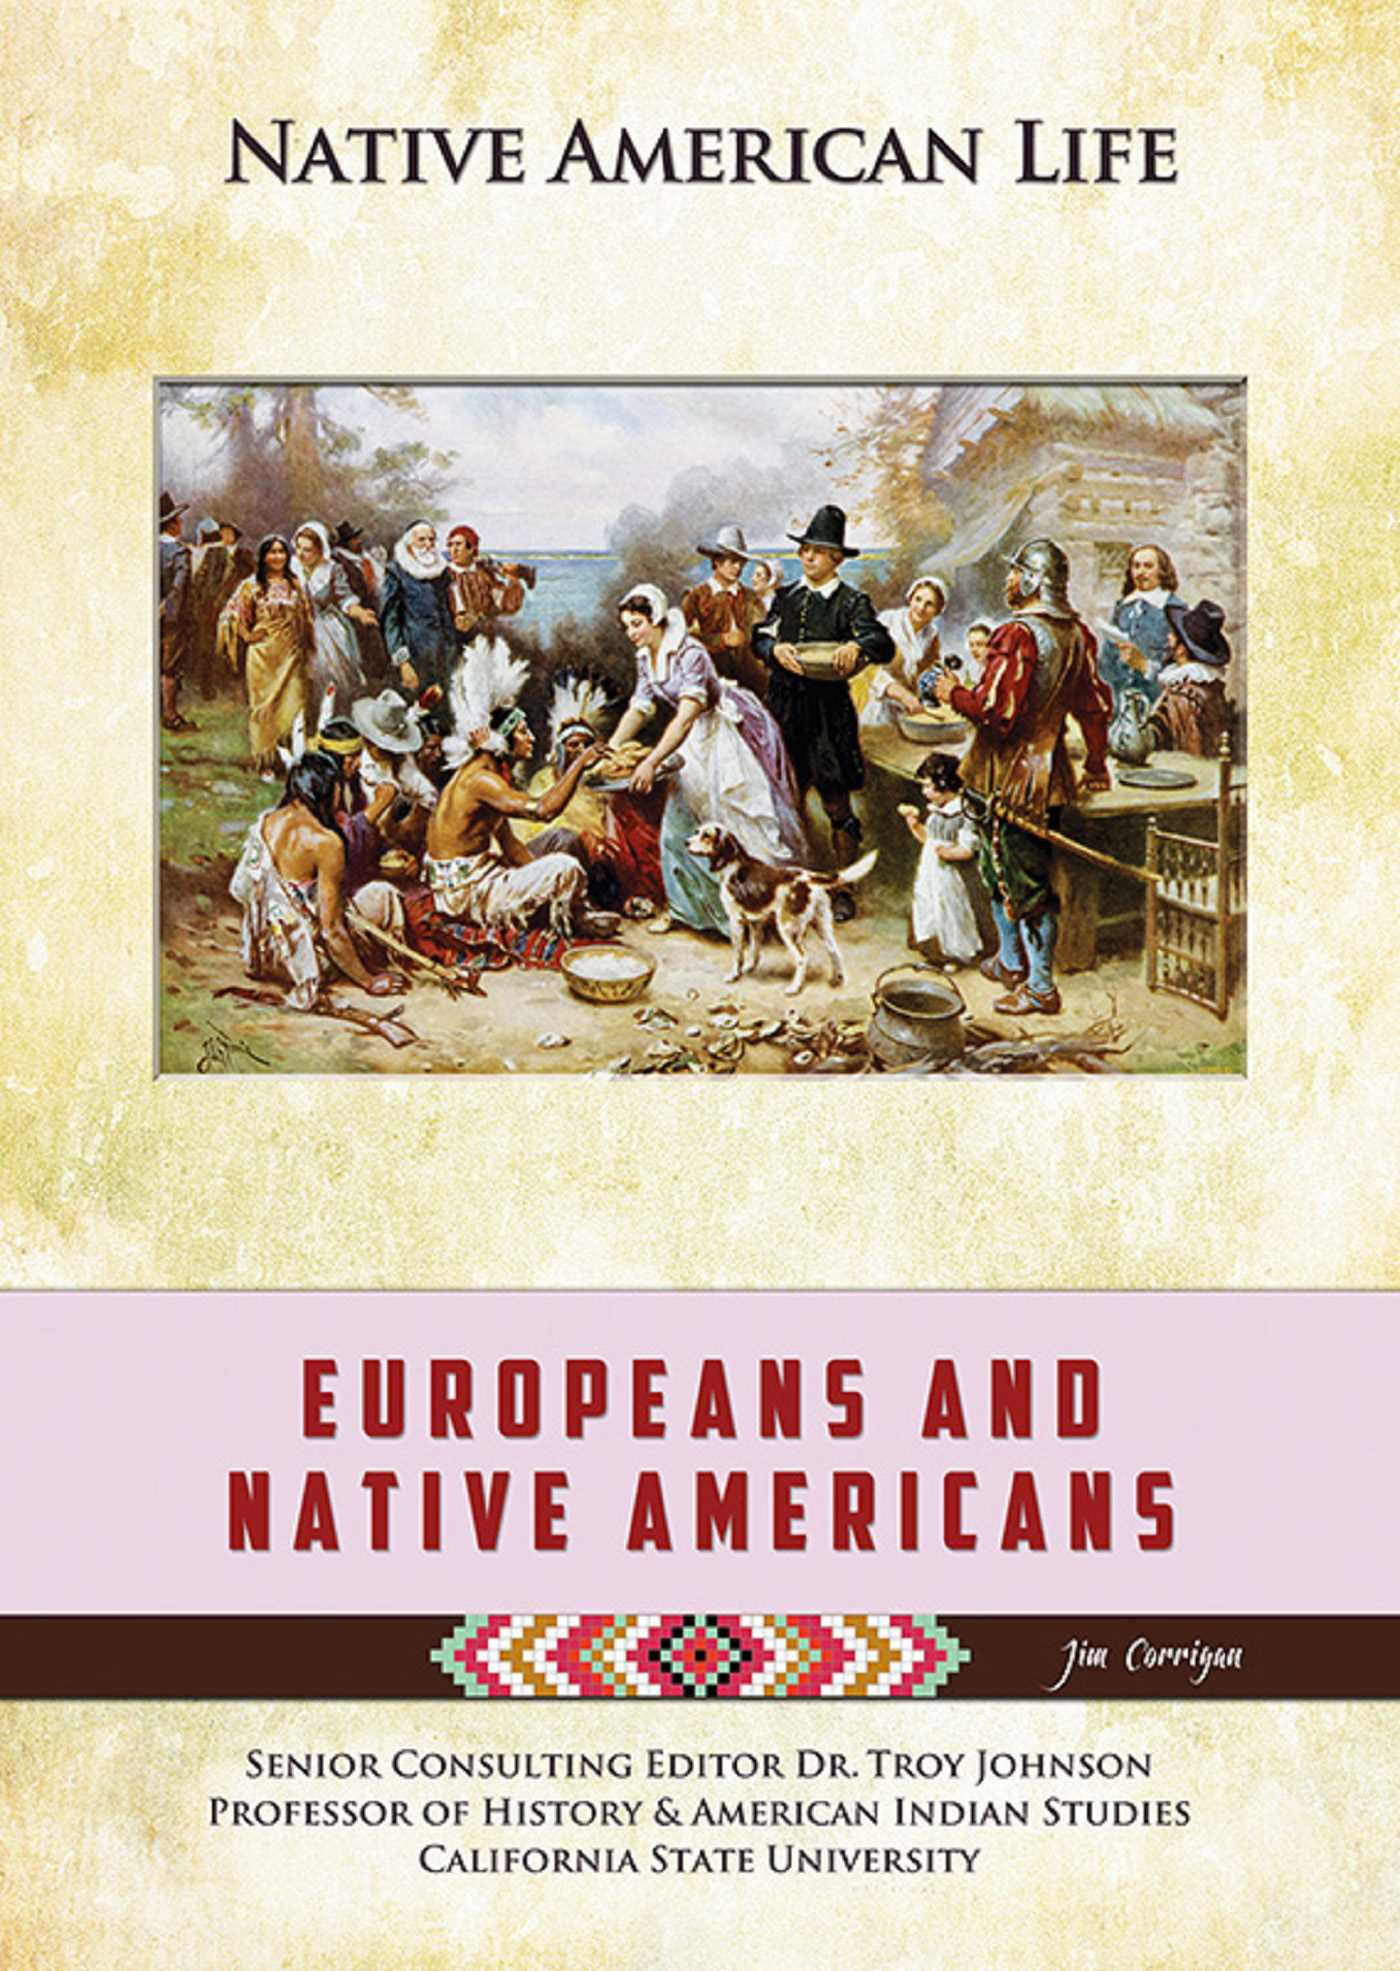 an analysis of europeans and native americans European roots for native americans an analysis of ancient dna from a 24,000-year-old siberian skeleton generates a new model for the original peopling of the.